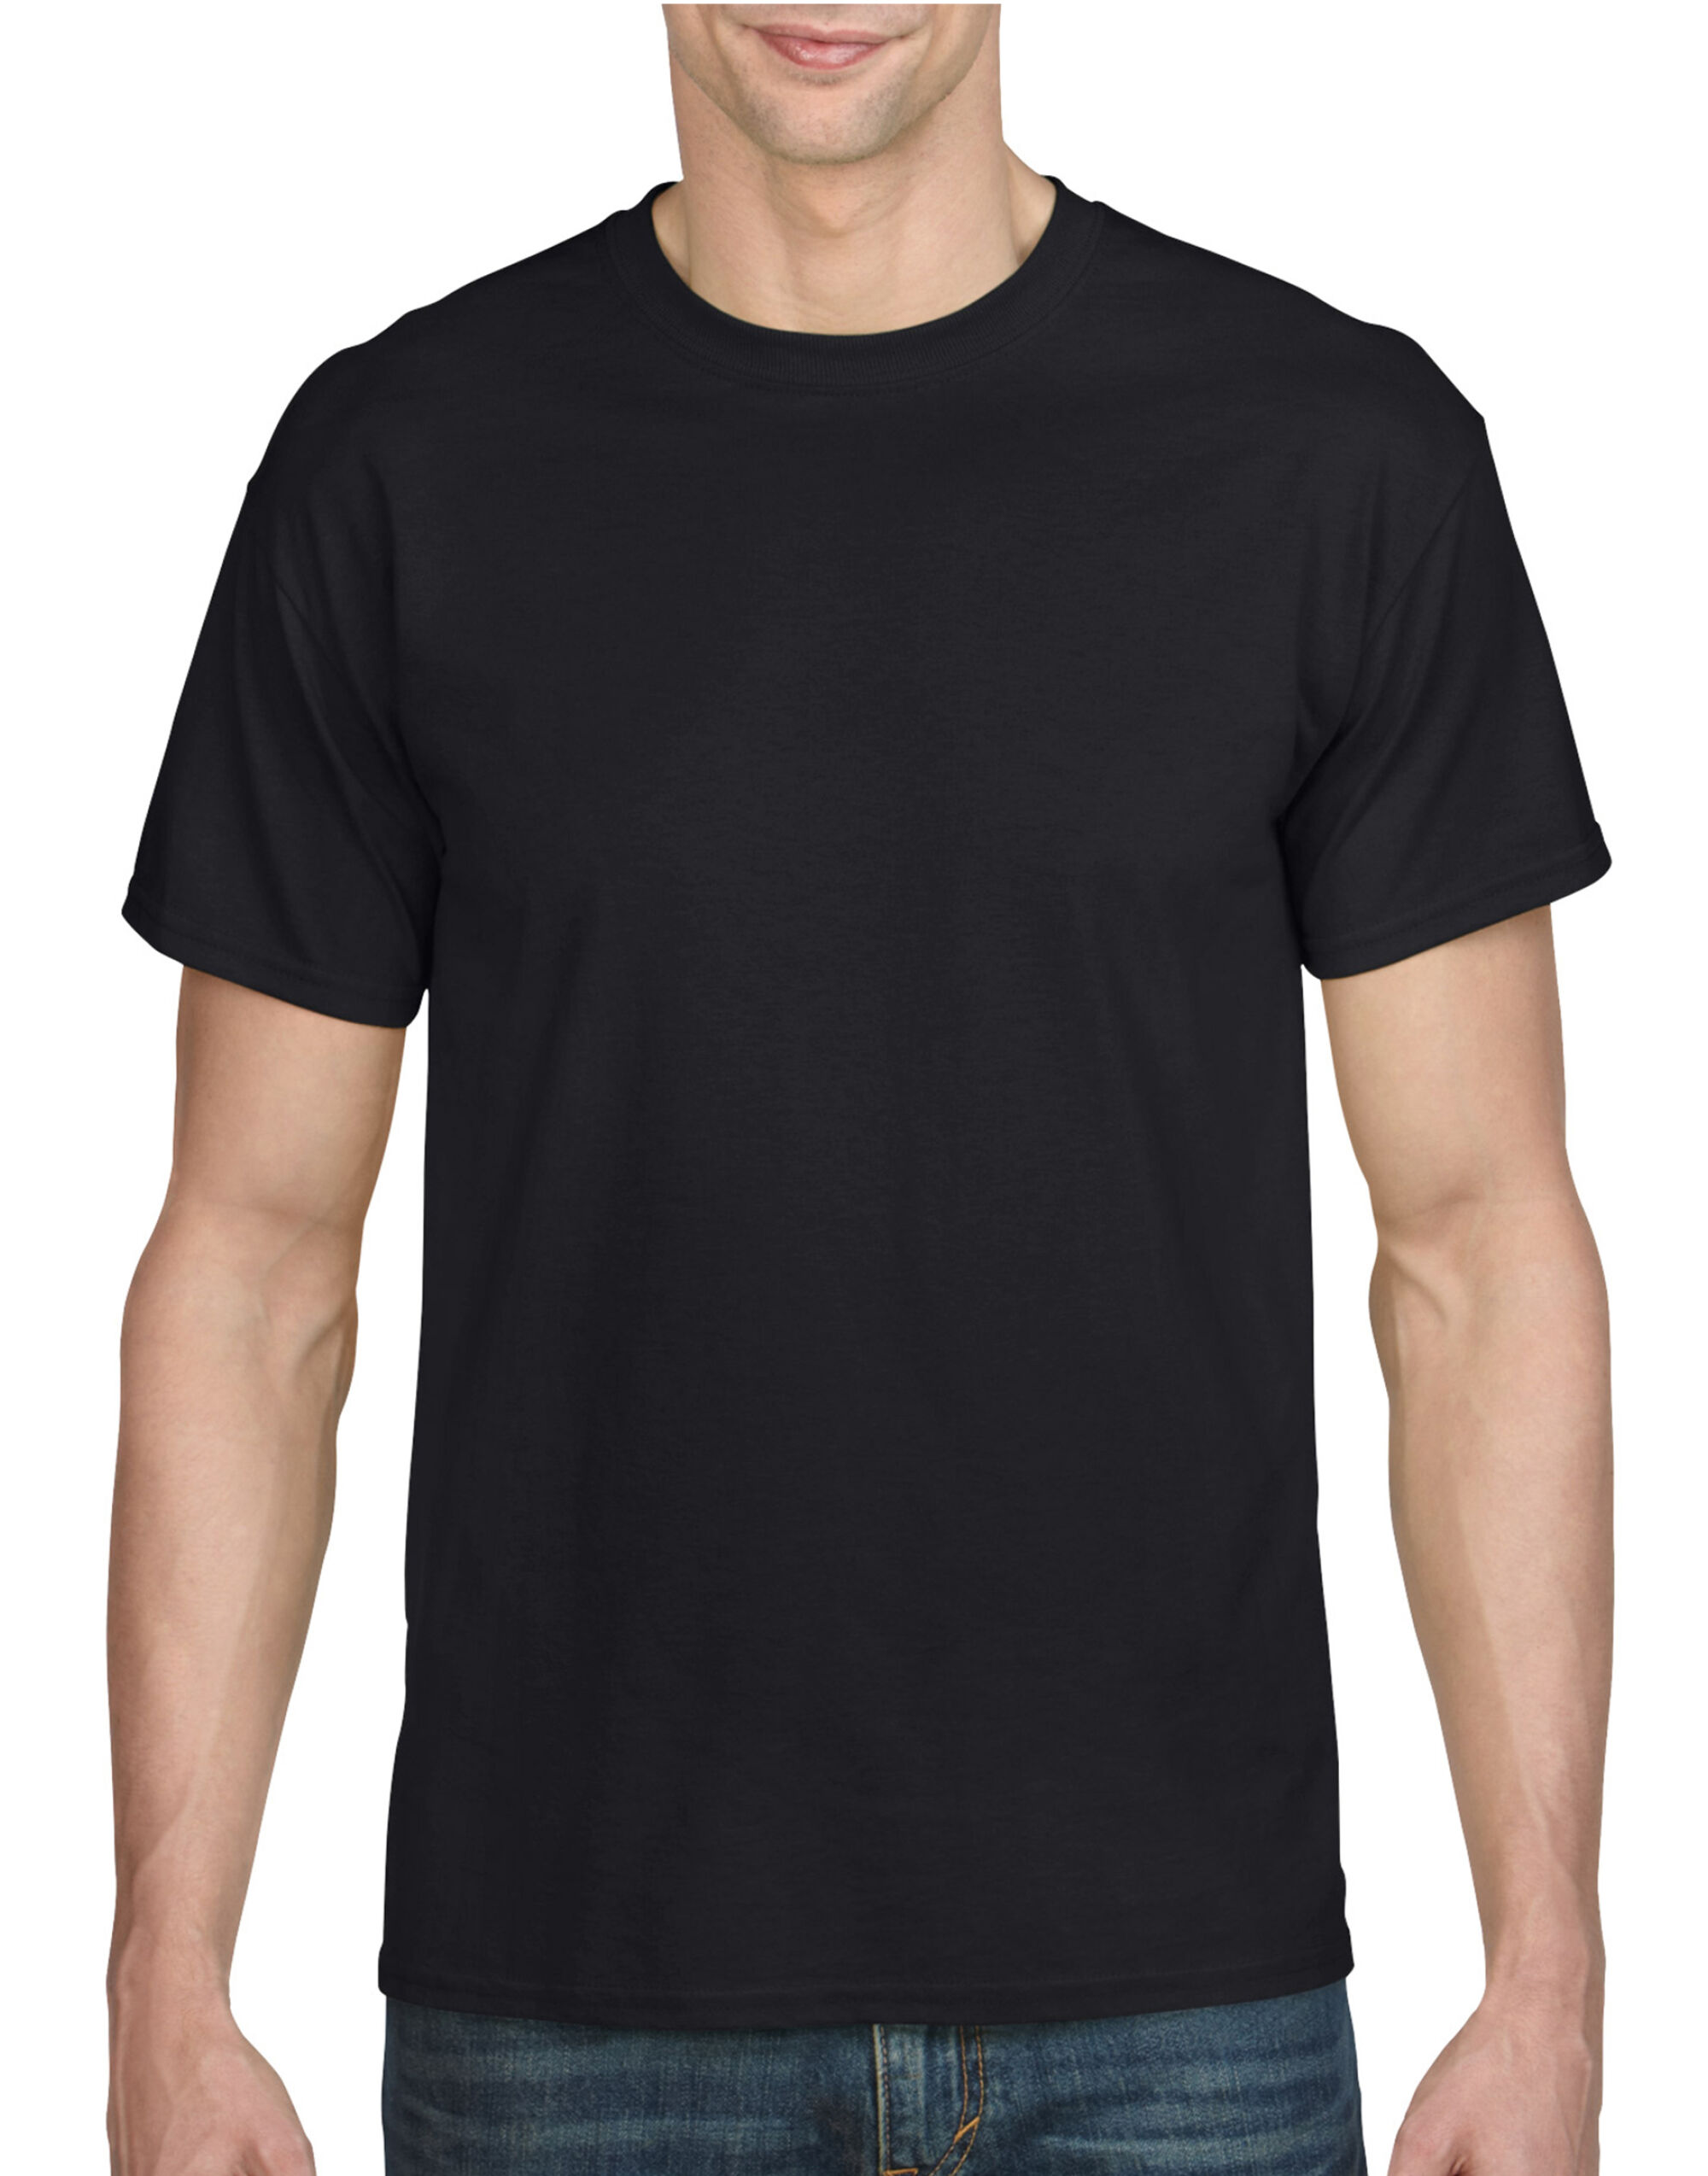 DryBlend Adult T-Shirt